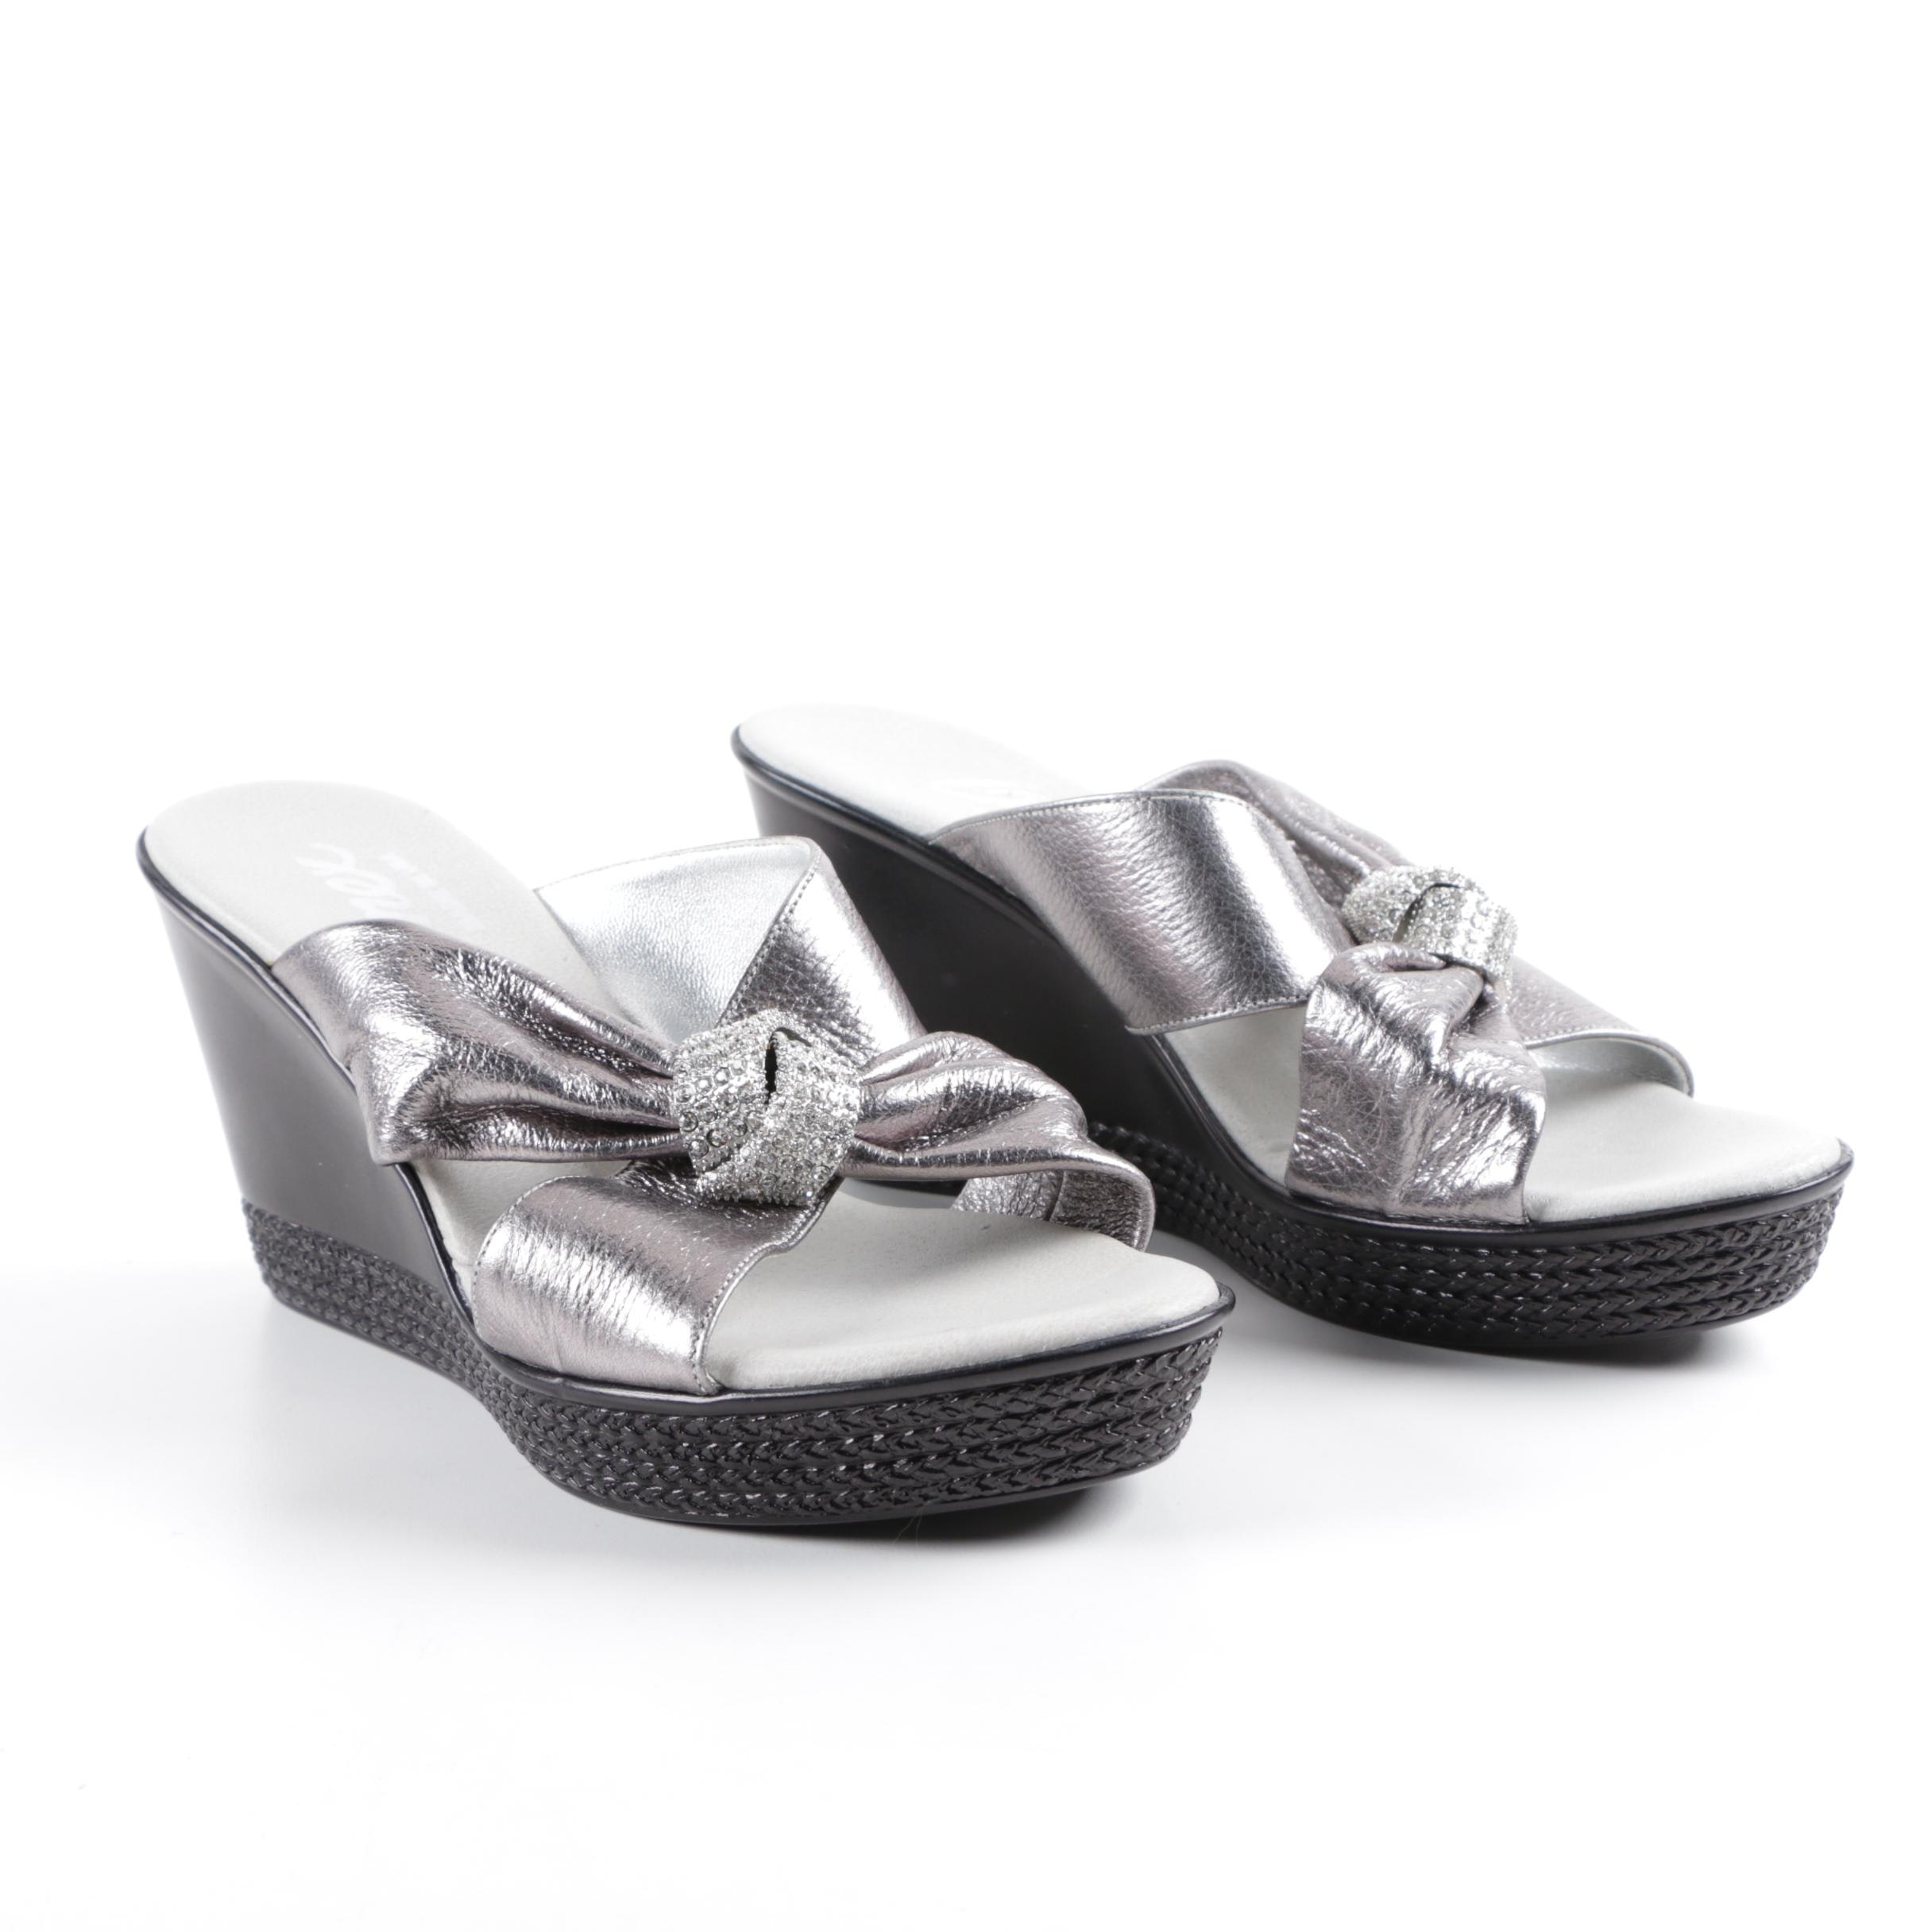 Onex Metallic Silver Tone Faux Leather Wedge Sandals